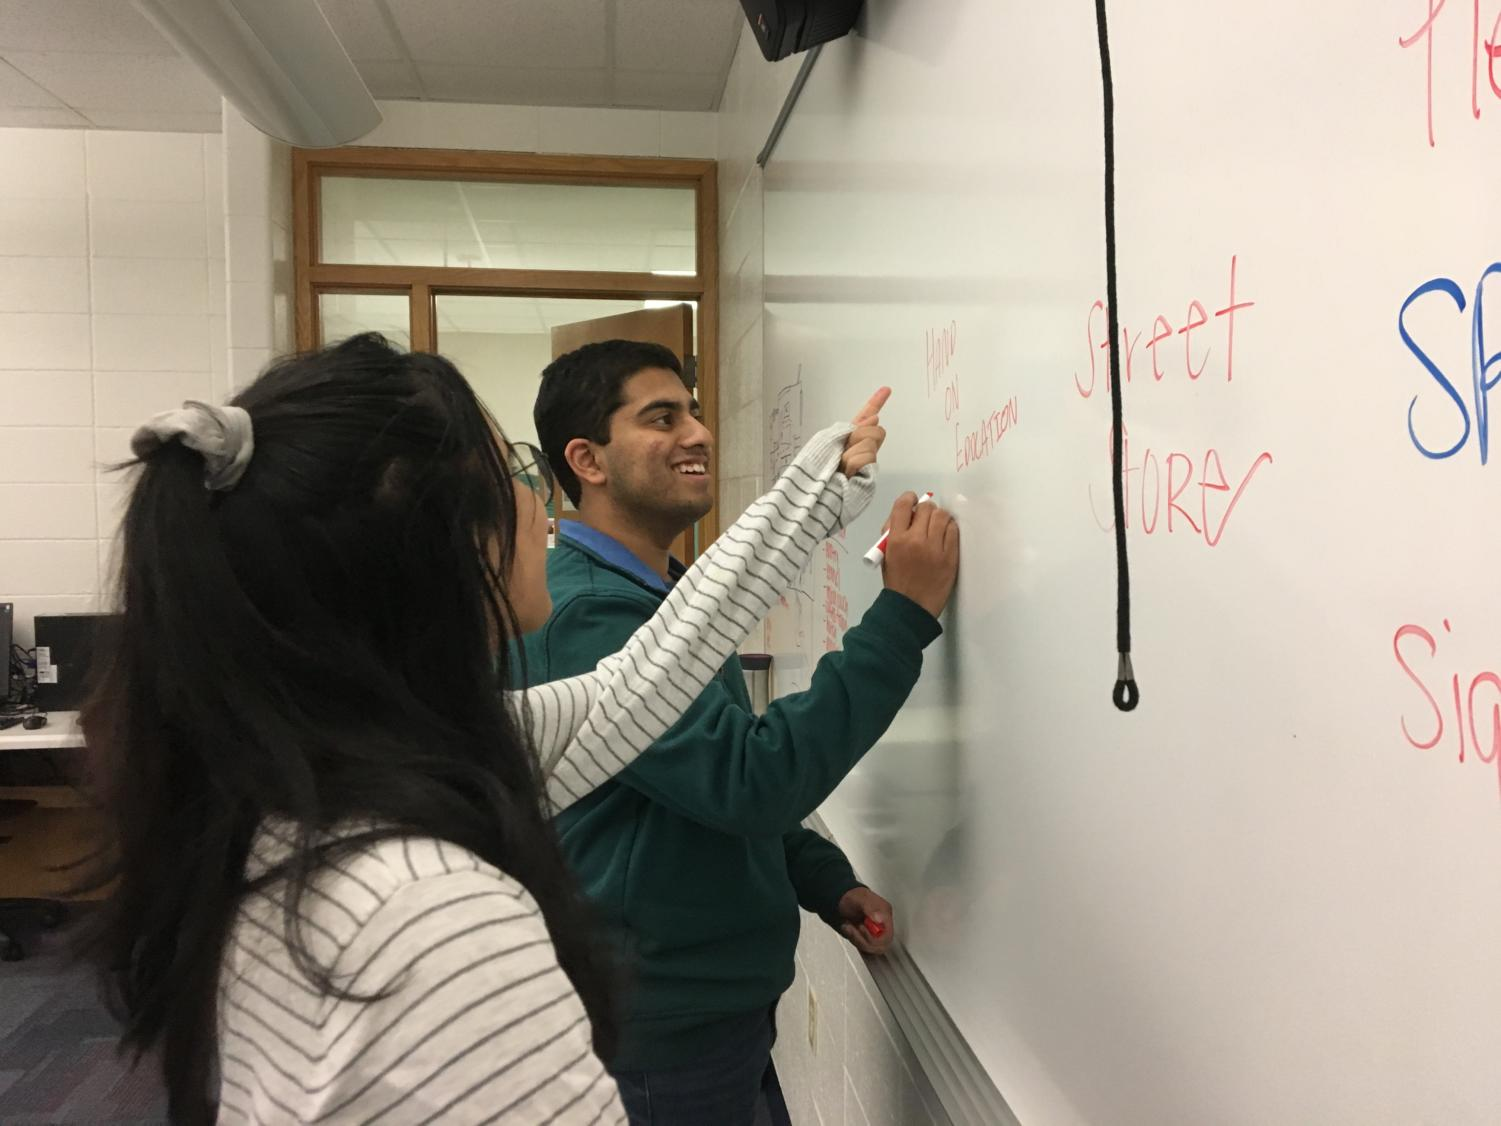 Juniors Karthik Arcot and Shivani Balachander brainstorm projects for next school year. Design for CHS has continued individual projects like Hands on Education since the Street Store event on March 16.